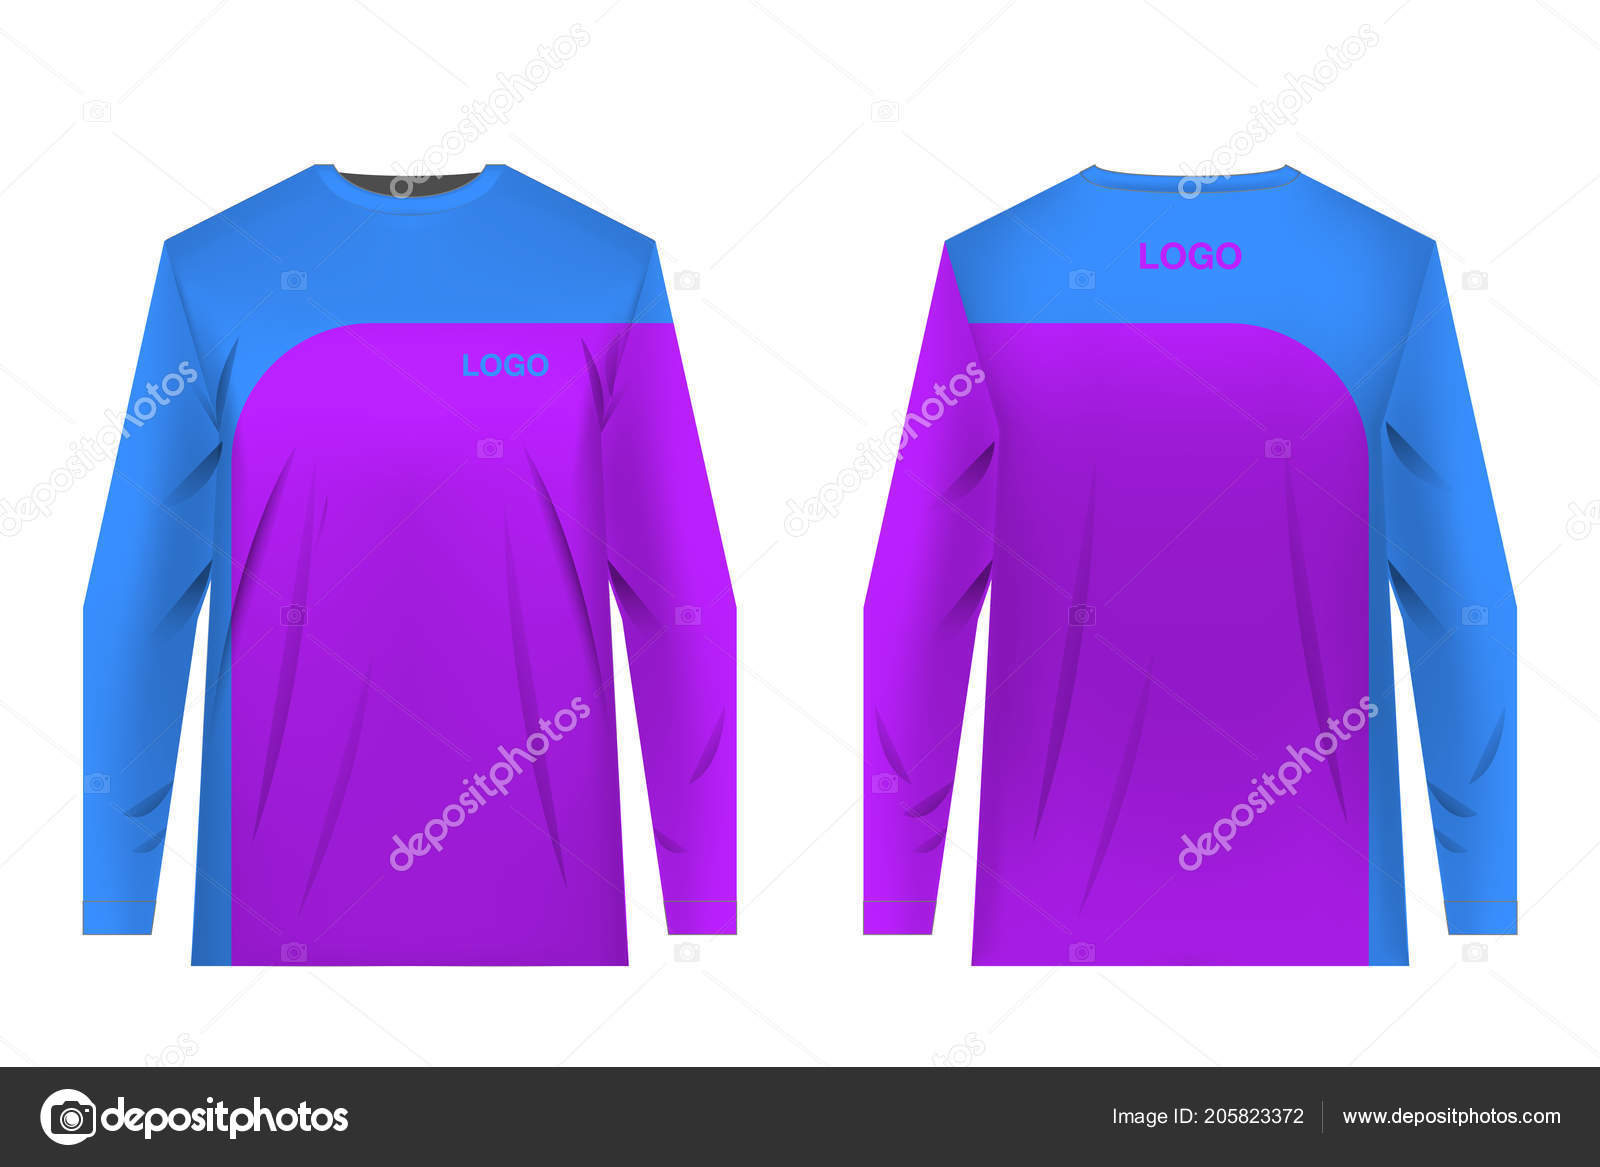 Templates Sportswear Designs Sublimation Printing Uniforms Competitions Team Games Corporate Stock Vector C Ternina 205823372